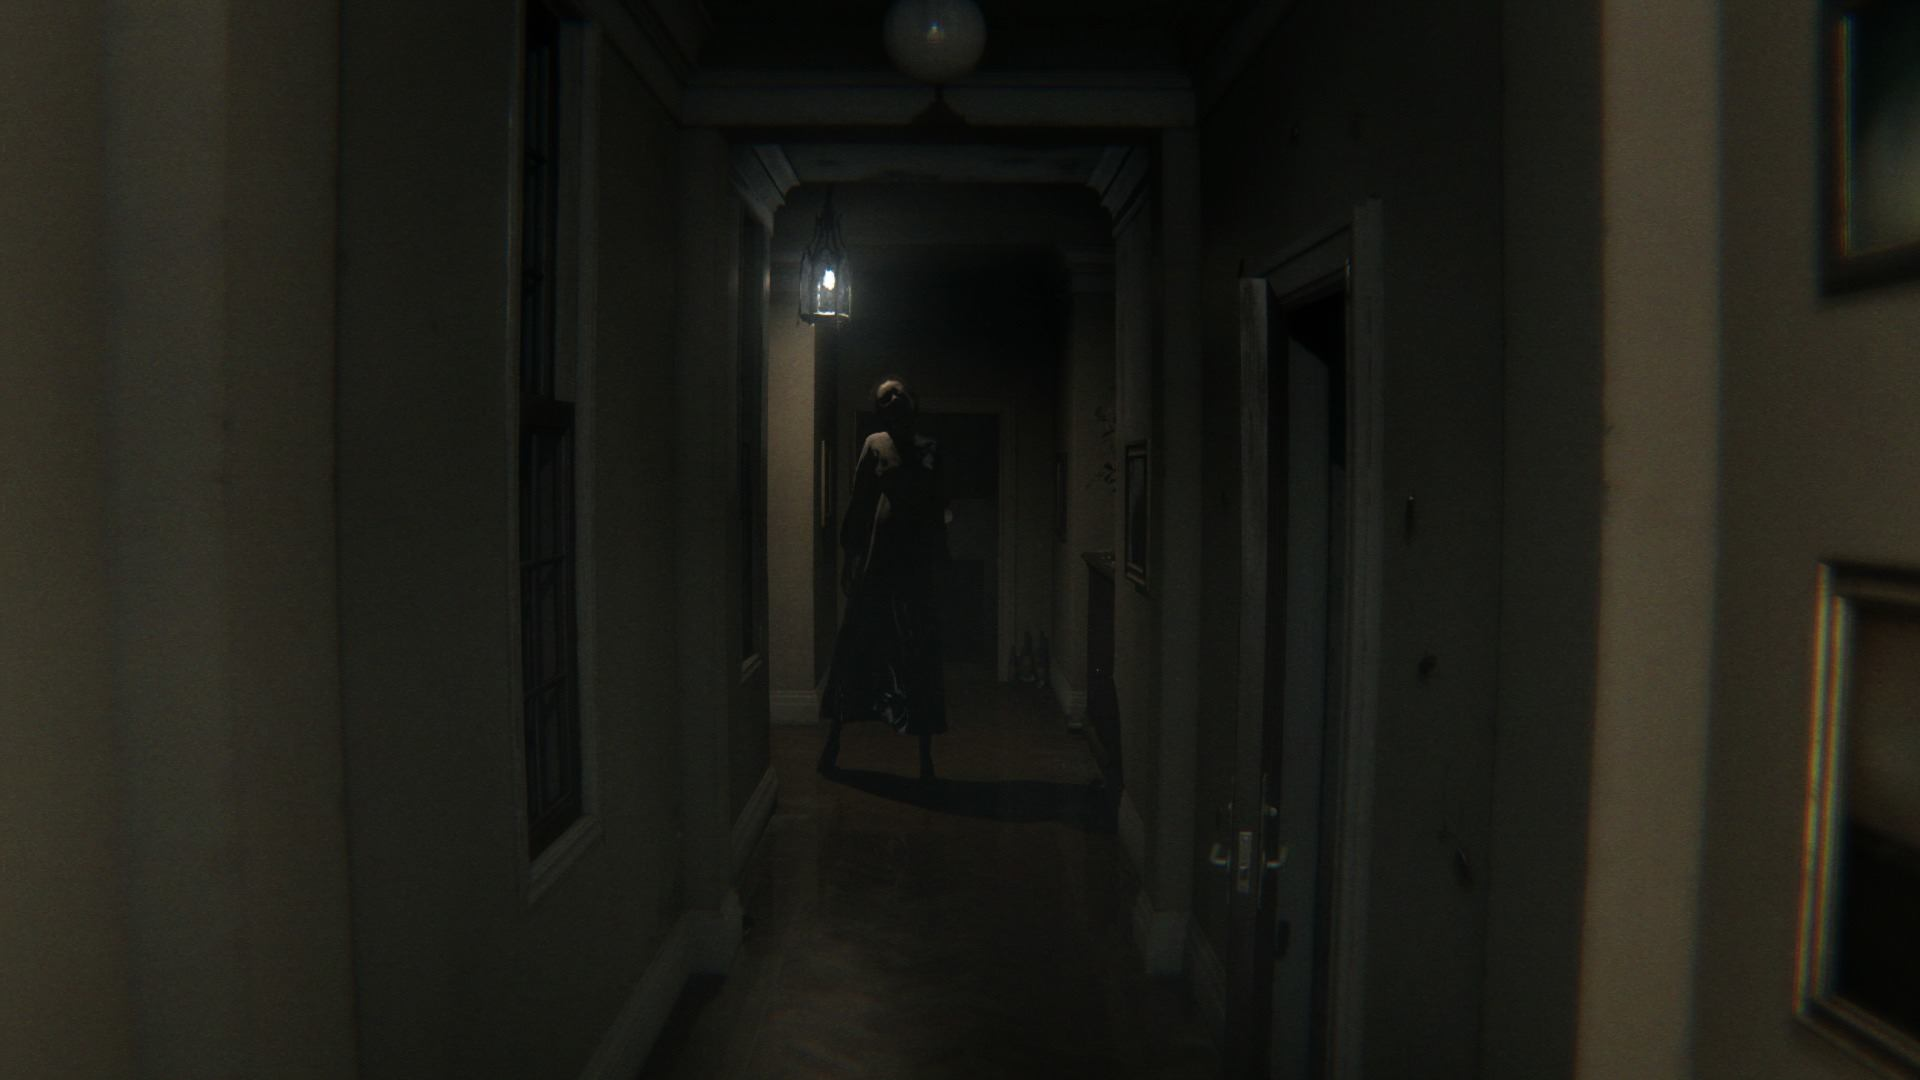 A New Camera Hack For Playable Teaser, Or PT, Reveals A Horrifying Image That Is Pure Nightmare Fuel